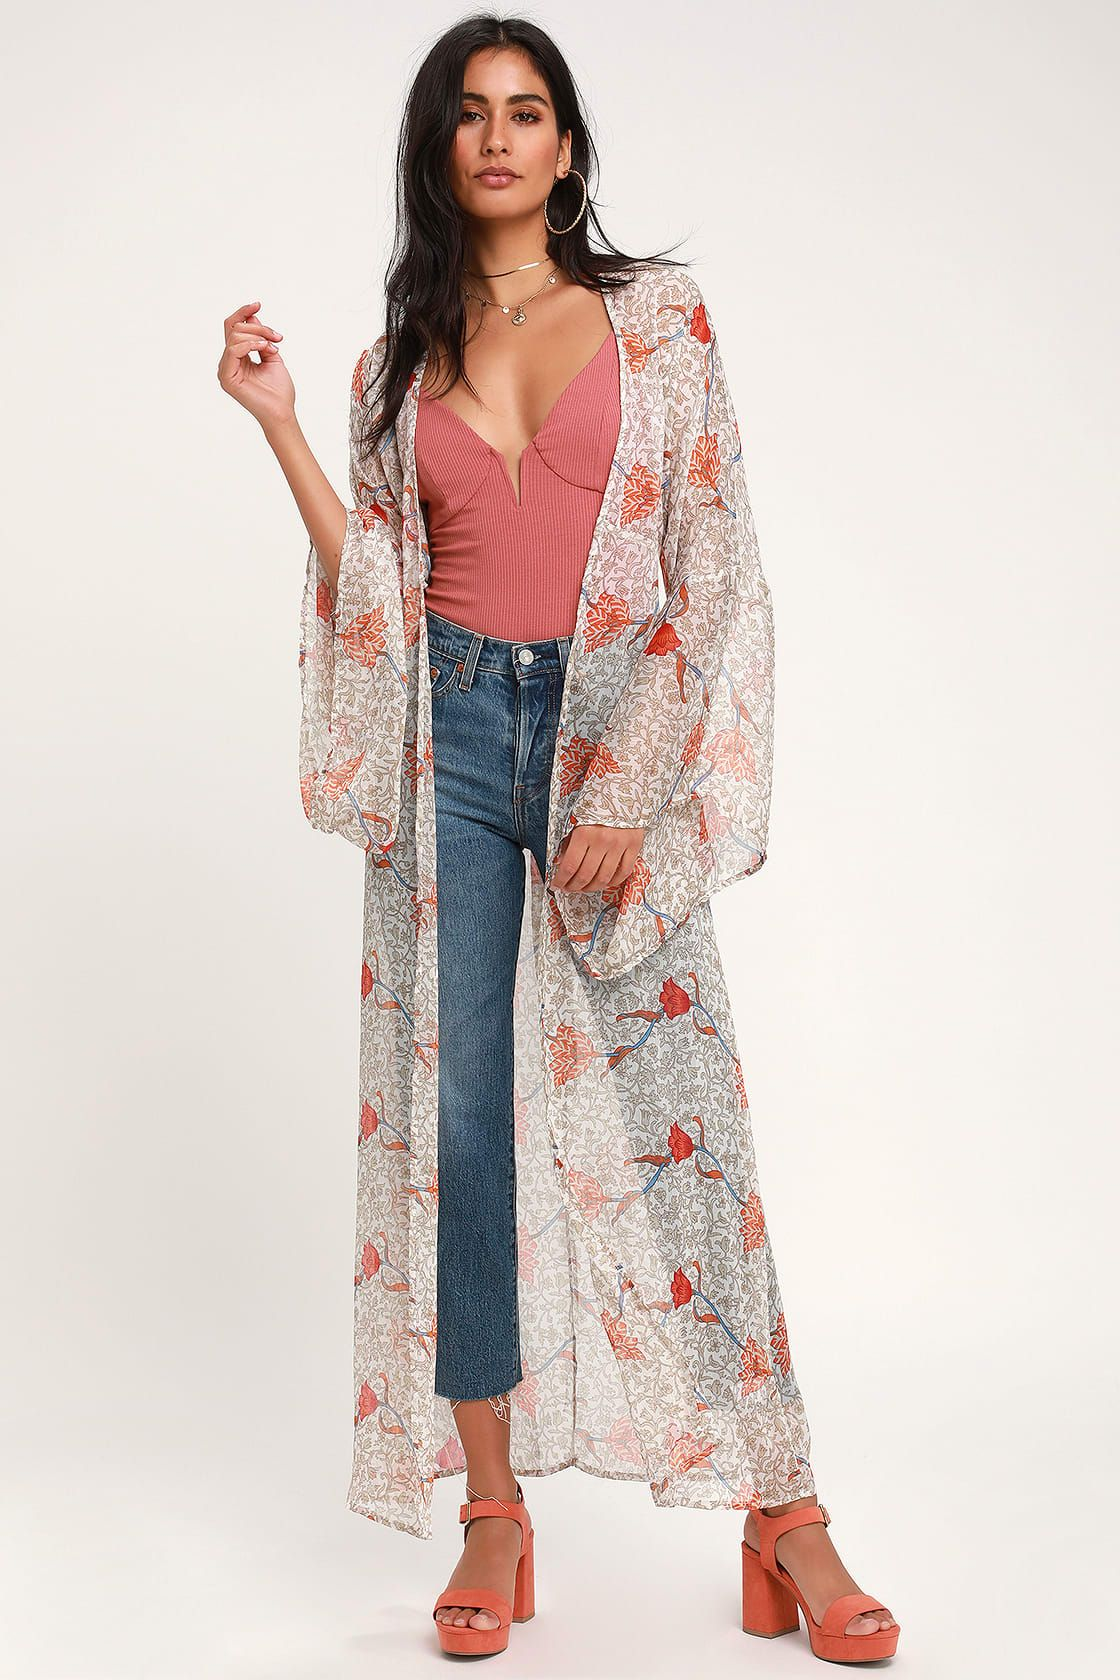 bb1c5089dc96 Dancing Daffodils Taupe Floral Print Chiffon Duster in 2019 ...